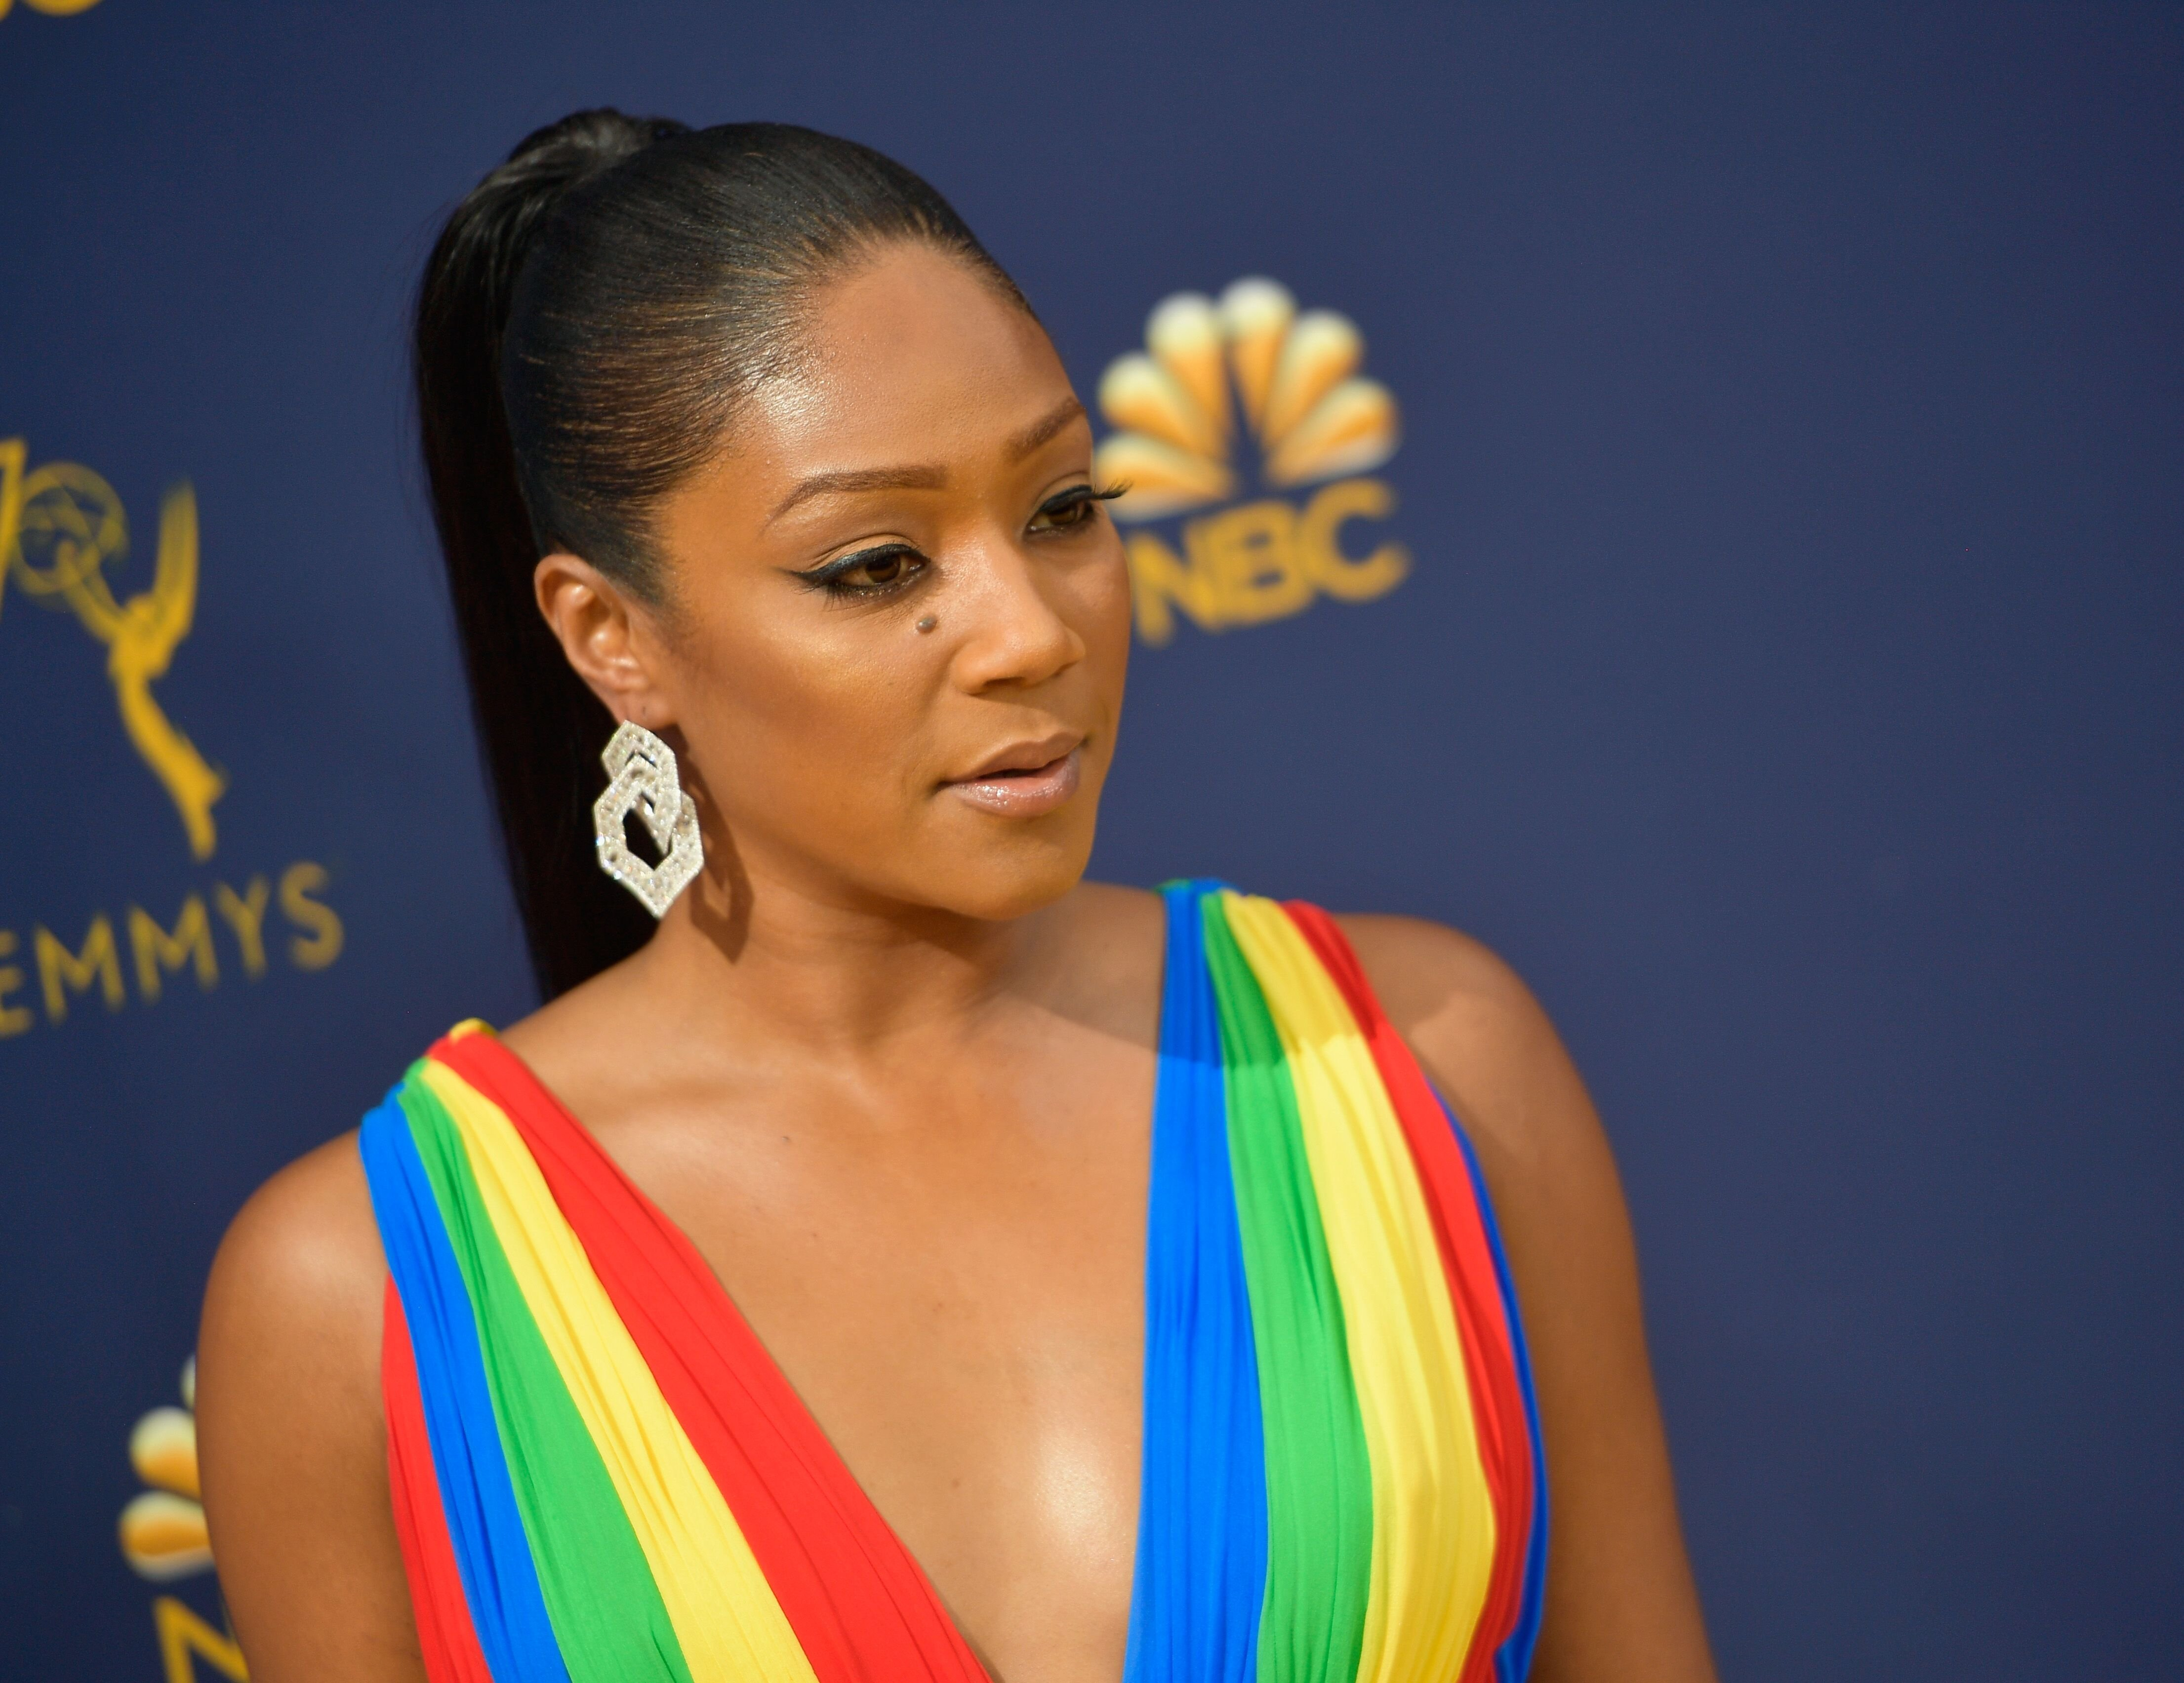 Tiffany Haddish on the red carpet of the Emmy's | Source: Getty Images/GlobalImagesUkraine